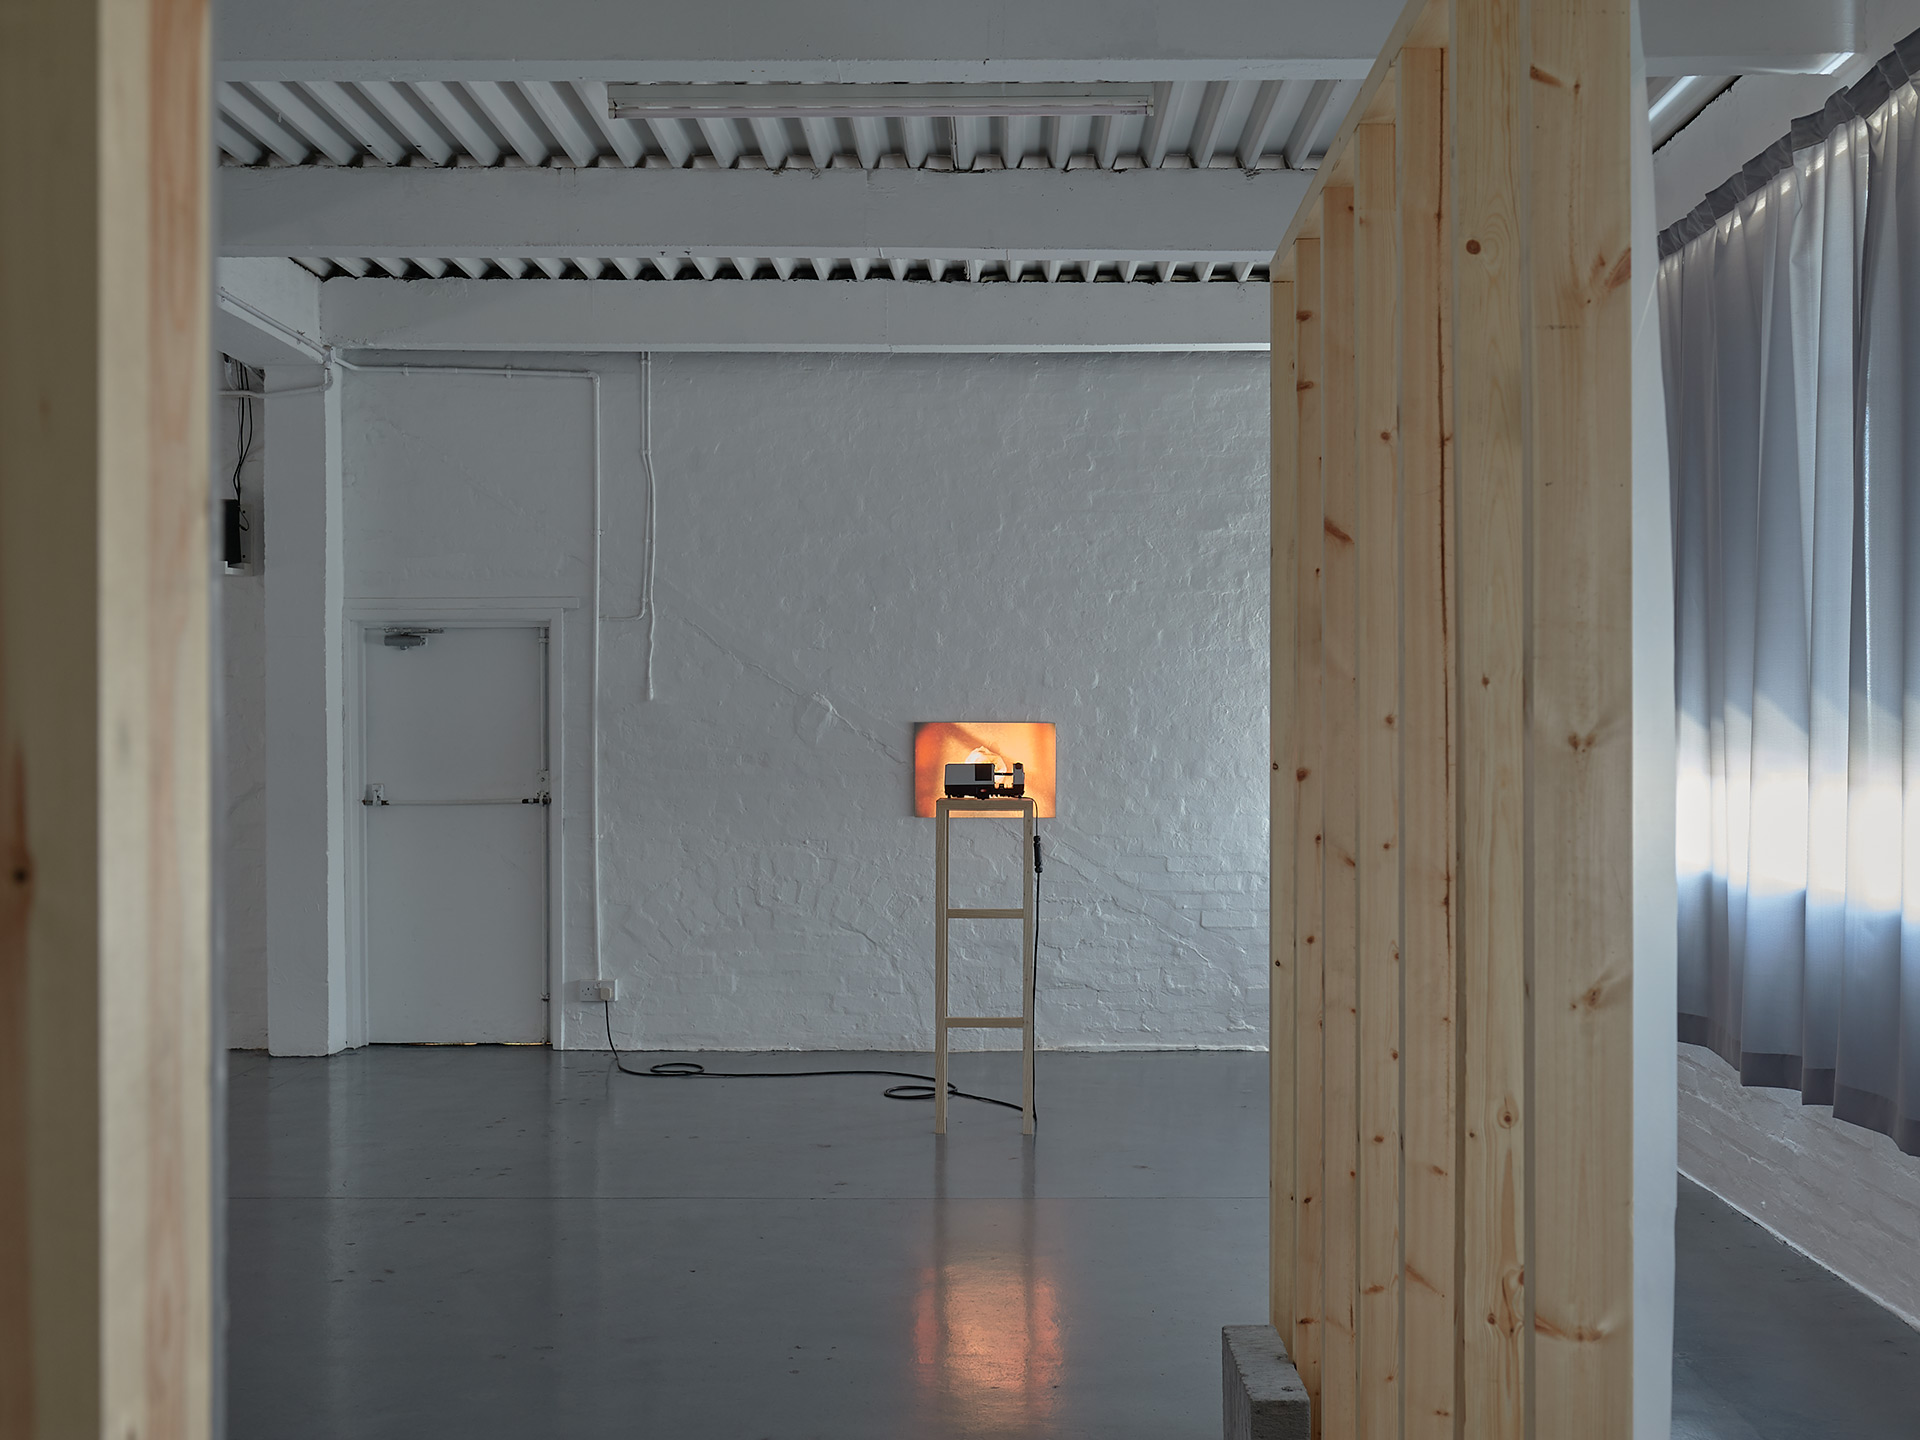 Two wooden wall like structures are seen from a side angle, in the background a slide projector sits on a custom made wooden plinth projecting a single image of a bag of fruit. There is a grey curtain to the right of the image.